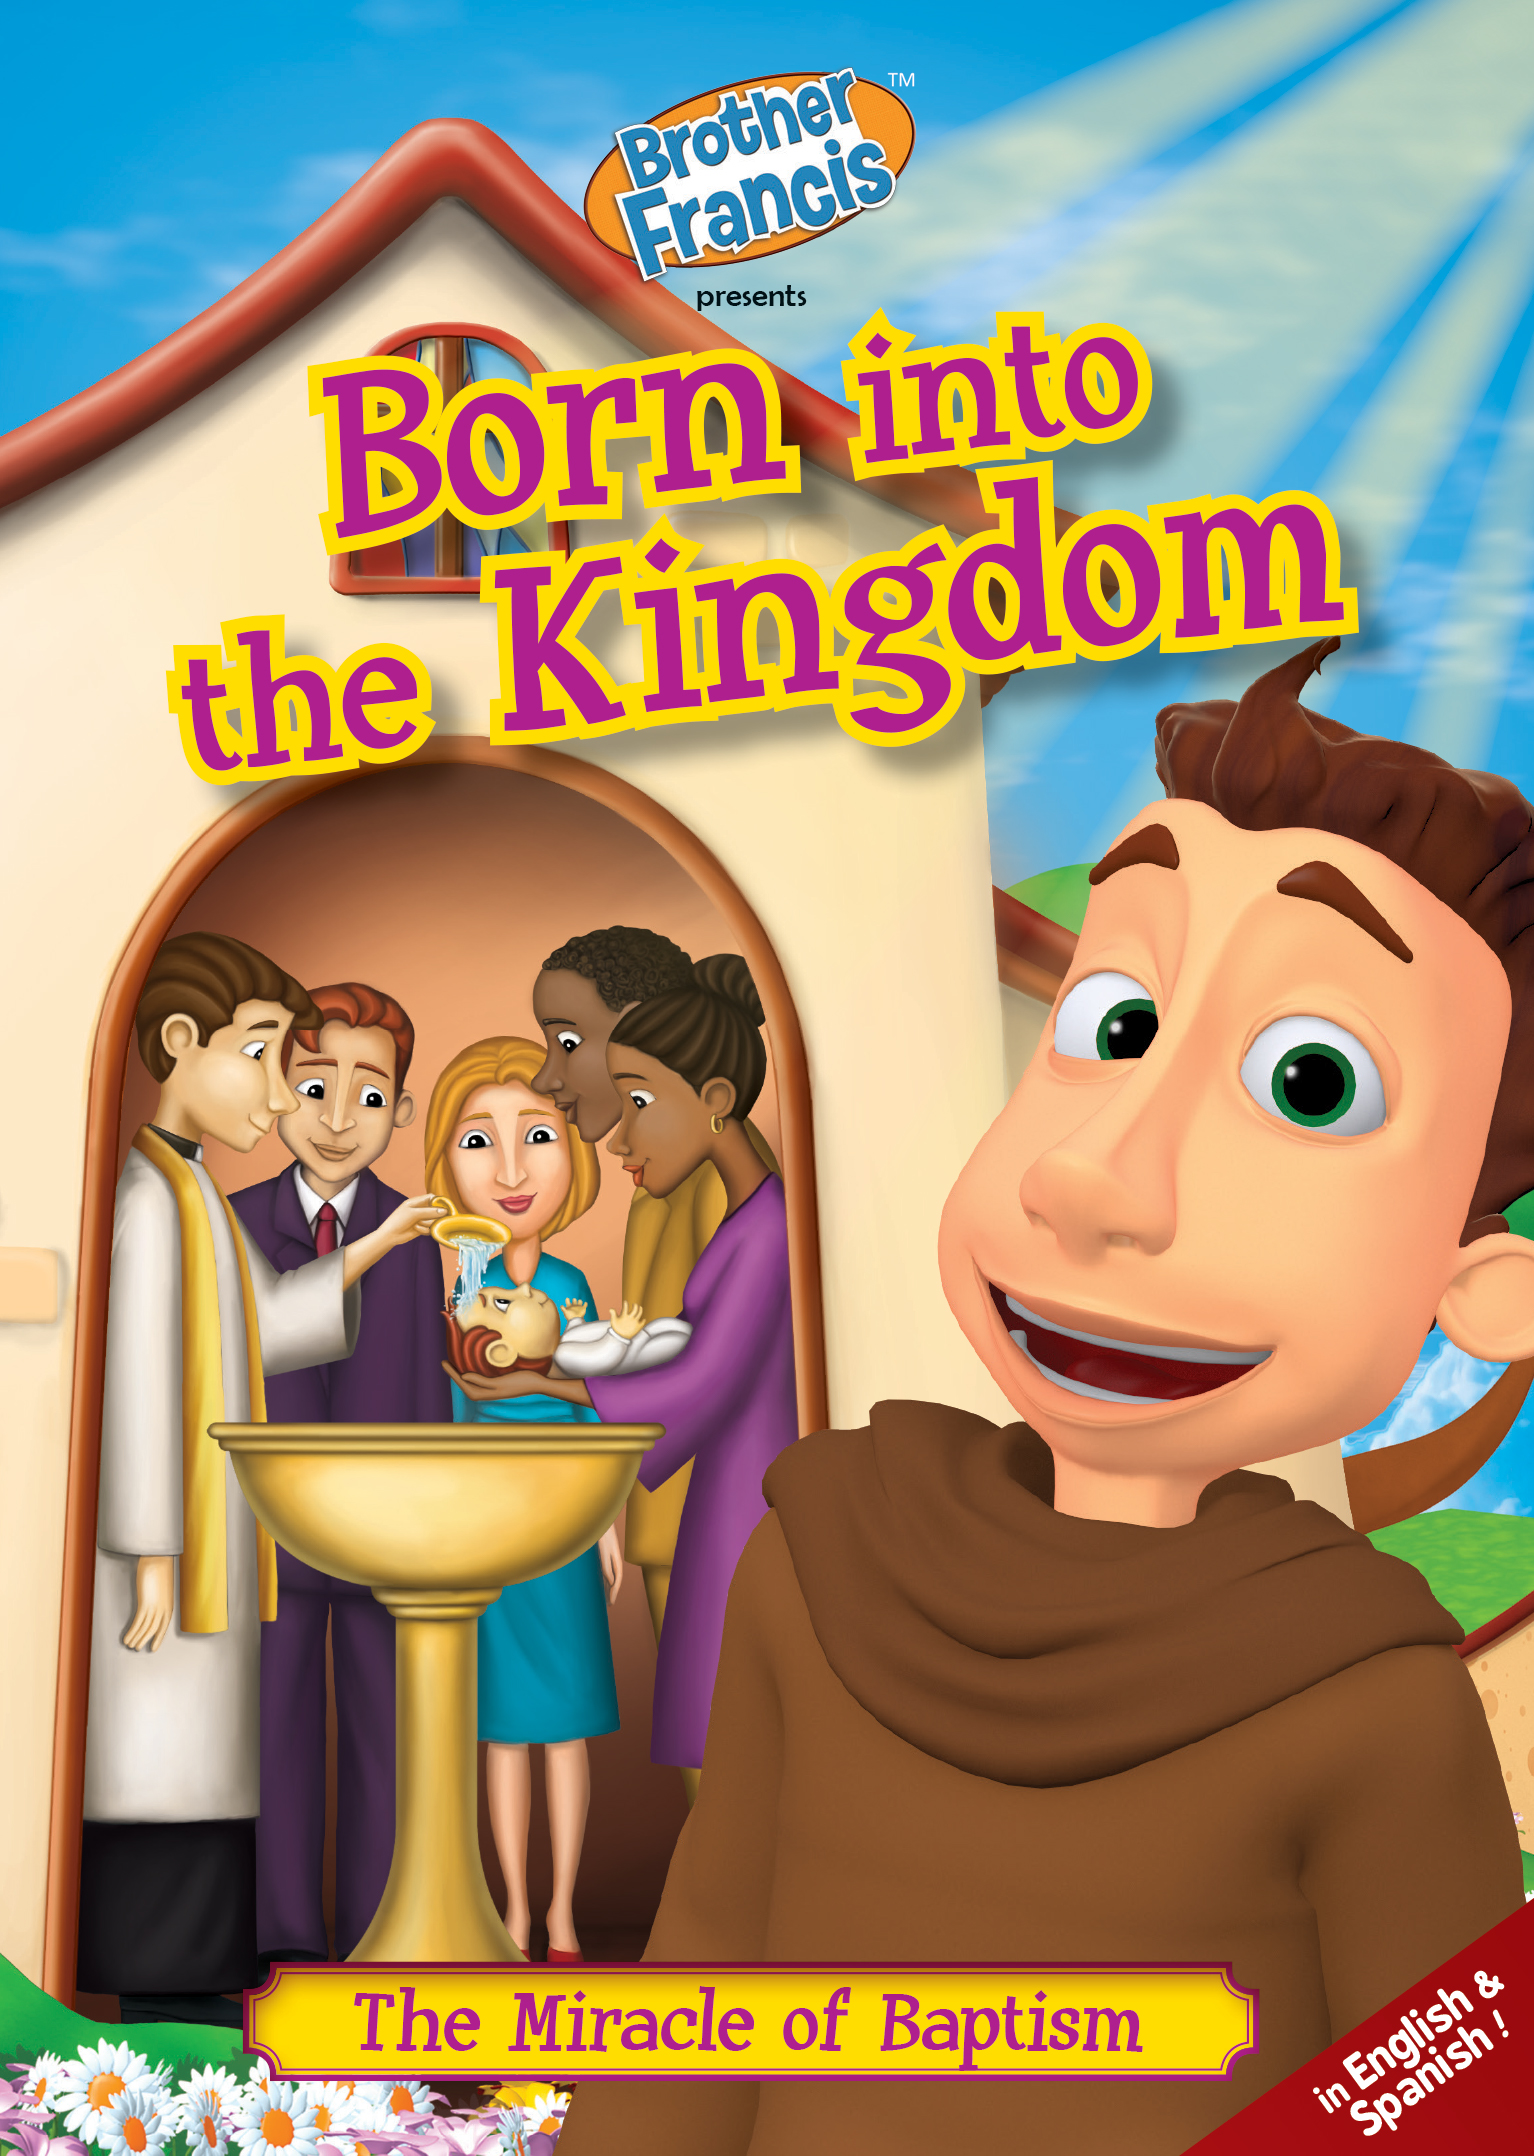 Brother Francis Episode 5: Born Into the Kingdom